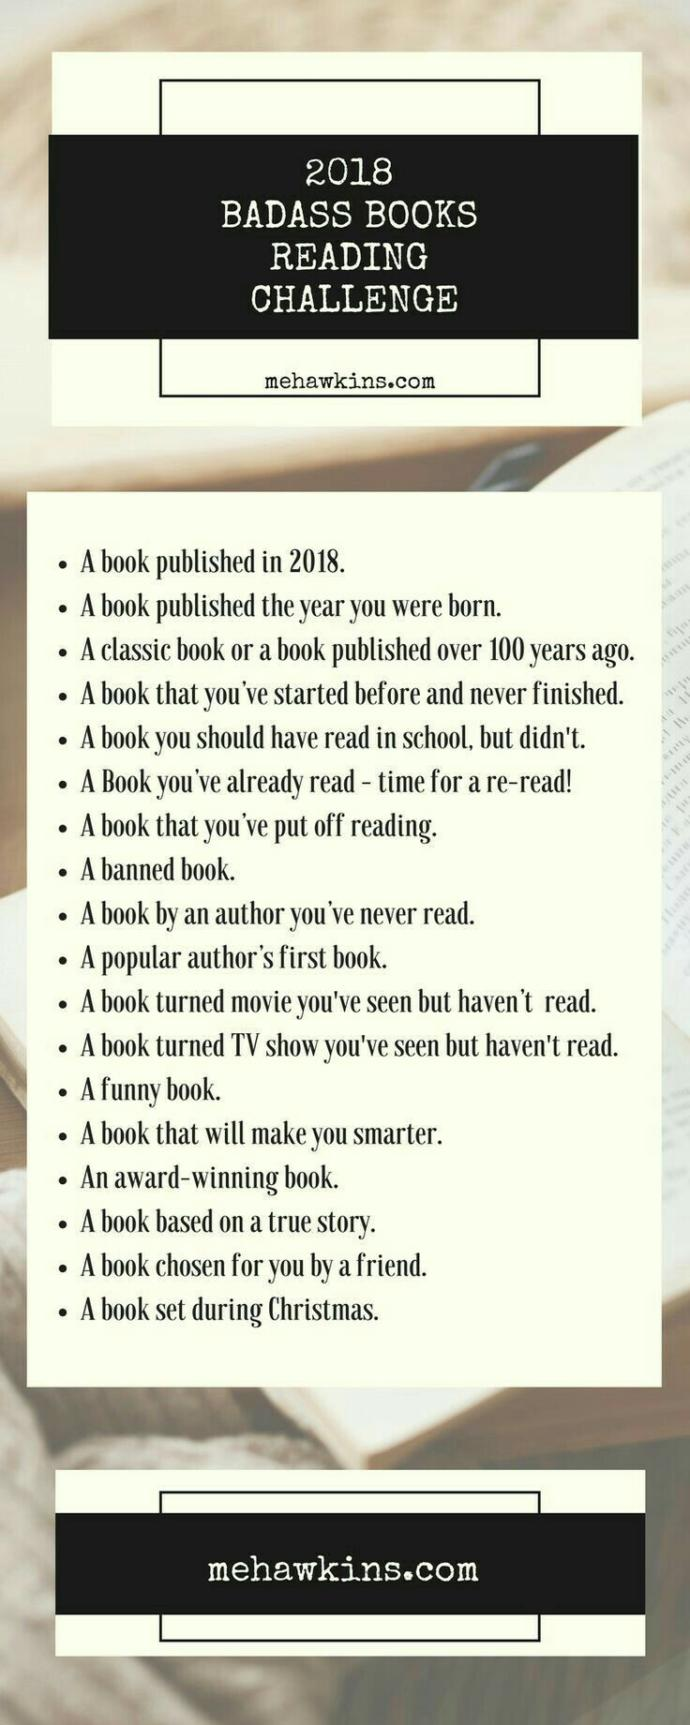 Readers: are you doing a reading challenge this year??